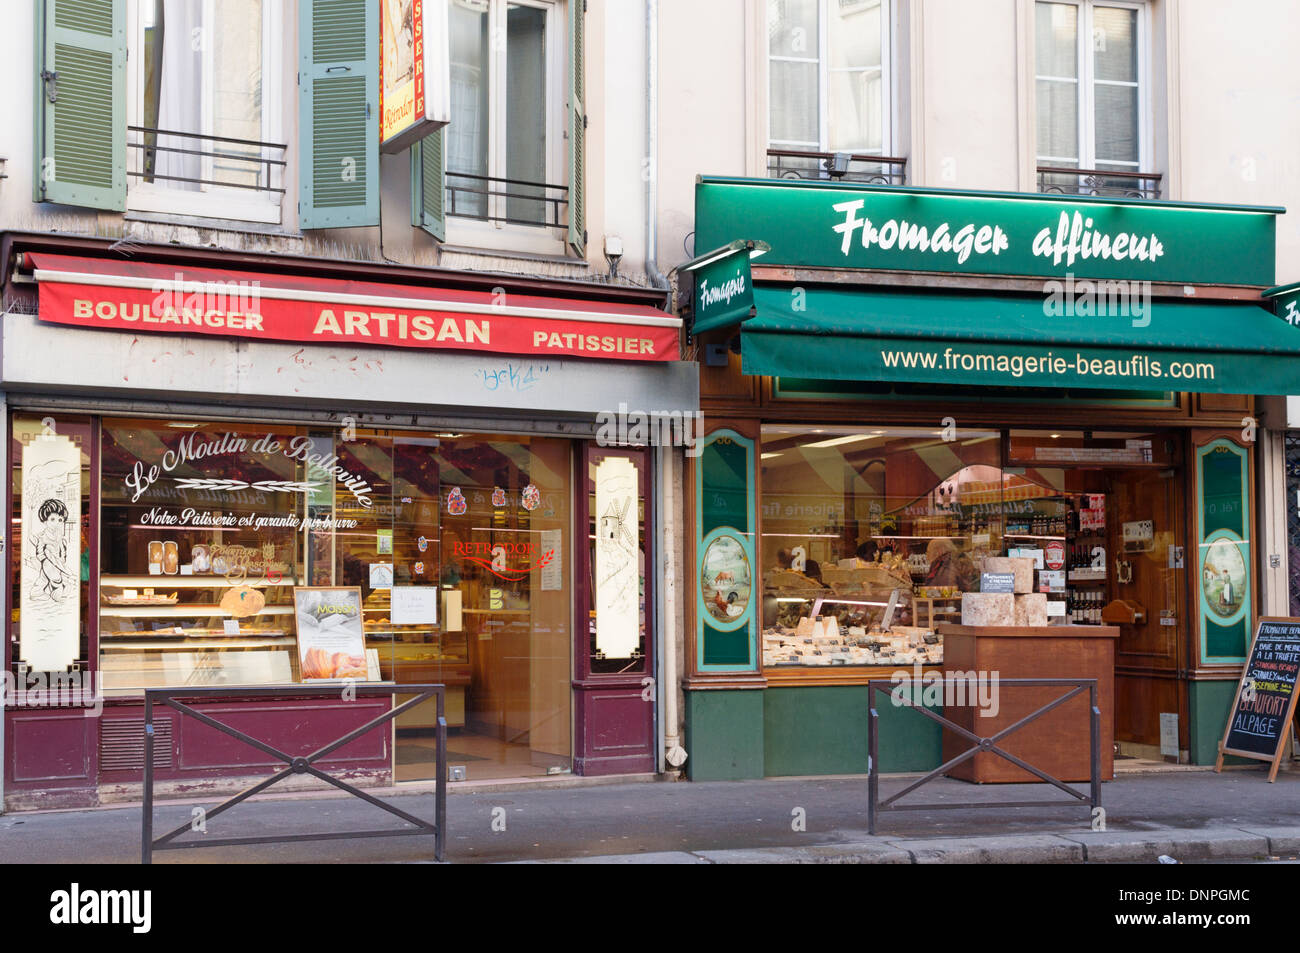 Paris, France - traditional bakery next door to an artisan cheese shop in the Belleville neighbourhood (20th arrondisment) - Stock Image